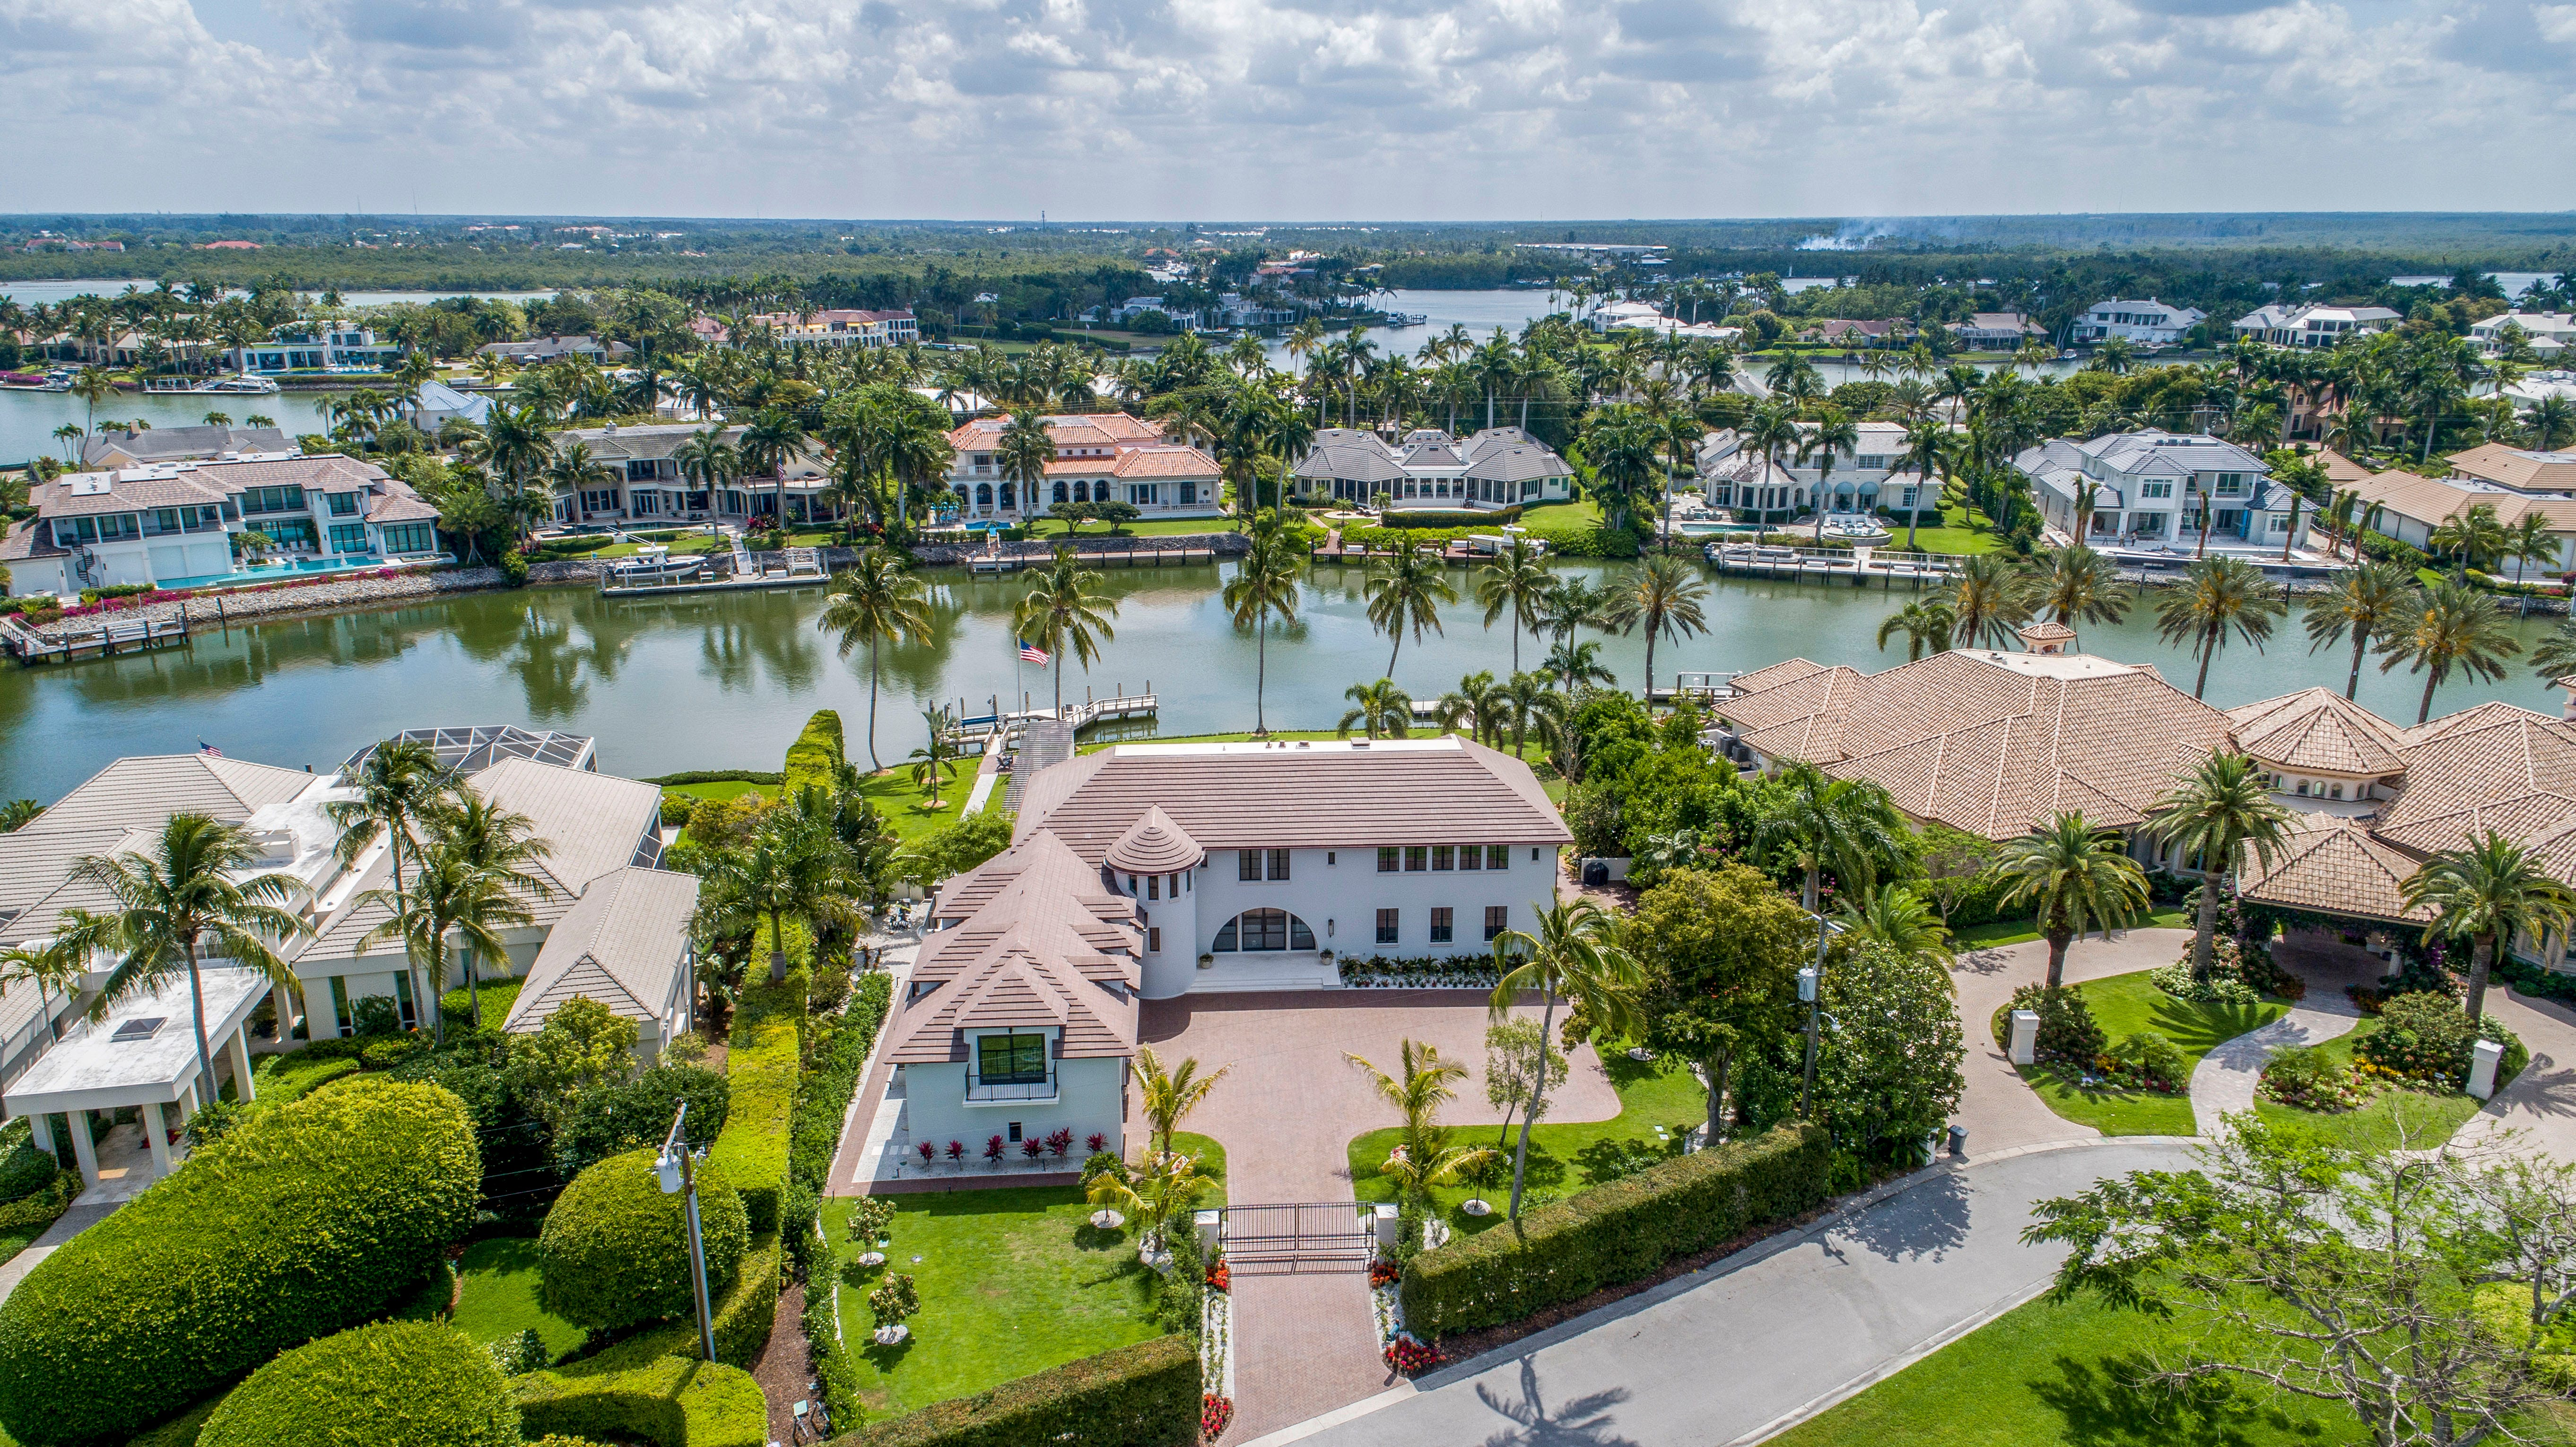 In the Know: Daily closed sales of $5 millionhomes in Naples is 'not a housing boom' 2